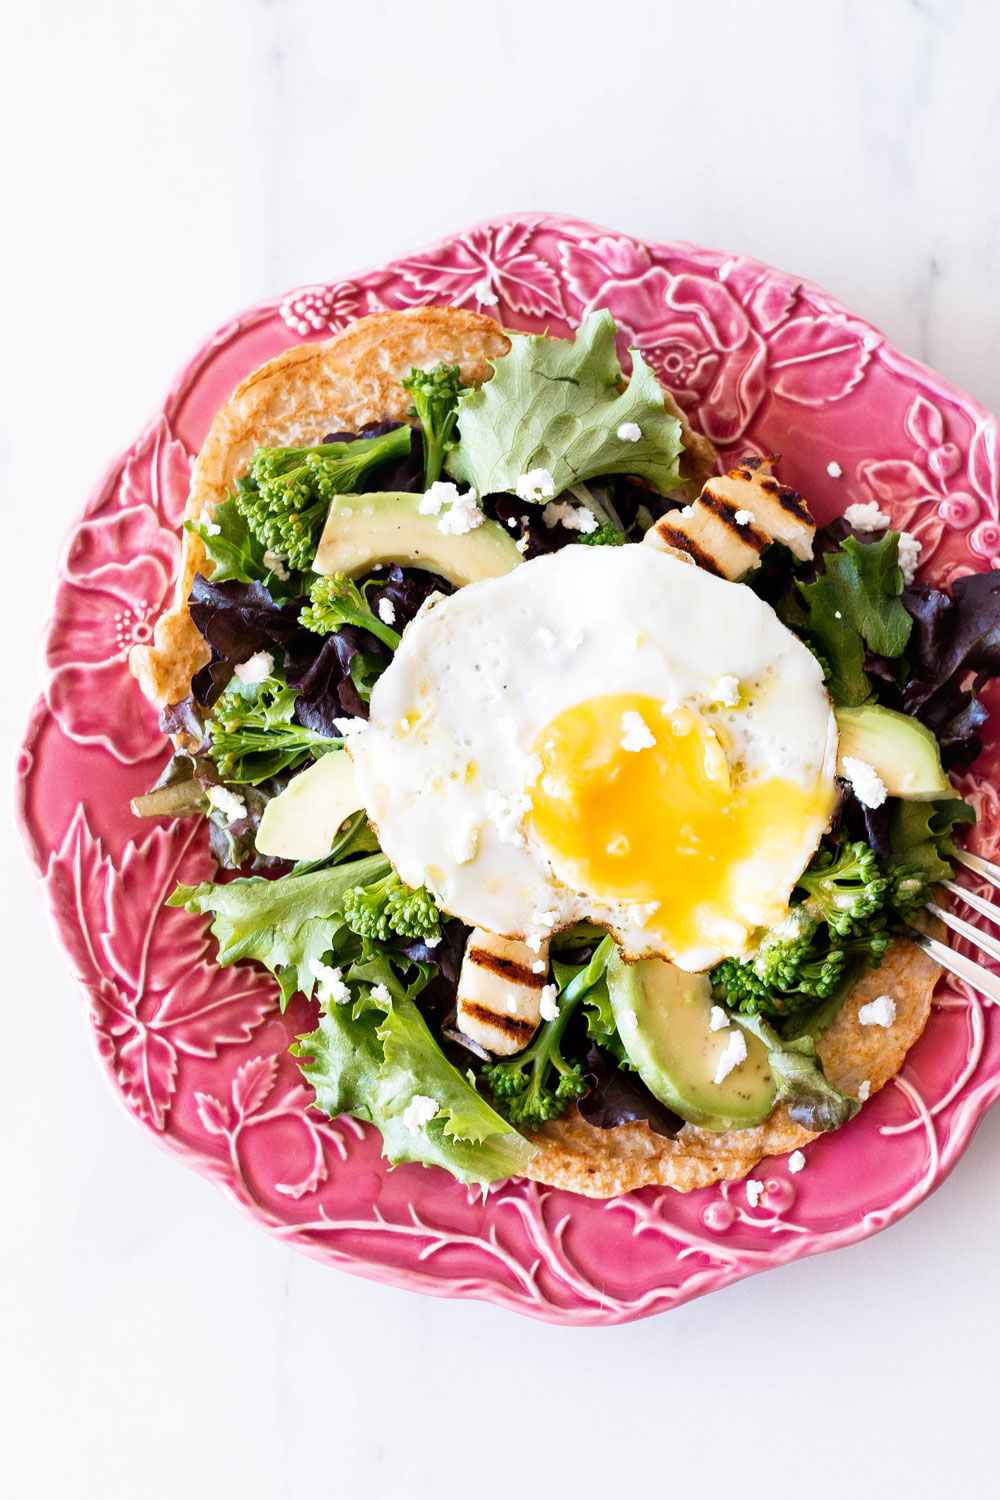 Oats aren't just for breakfast anymore. These Oat Pancakes with Green Salad, Fried Halloumi, and Egg can be eaten at any time of the day. https://www.spotebi.com/recipes/oat-pancakes-green-salad-fried-halloumi-egg/